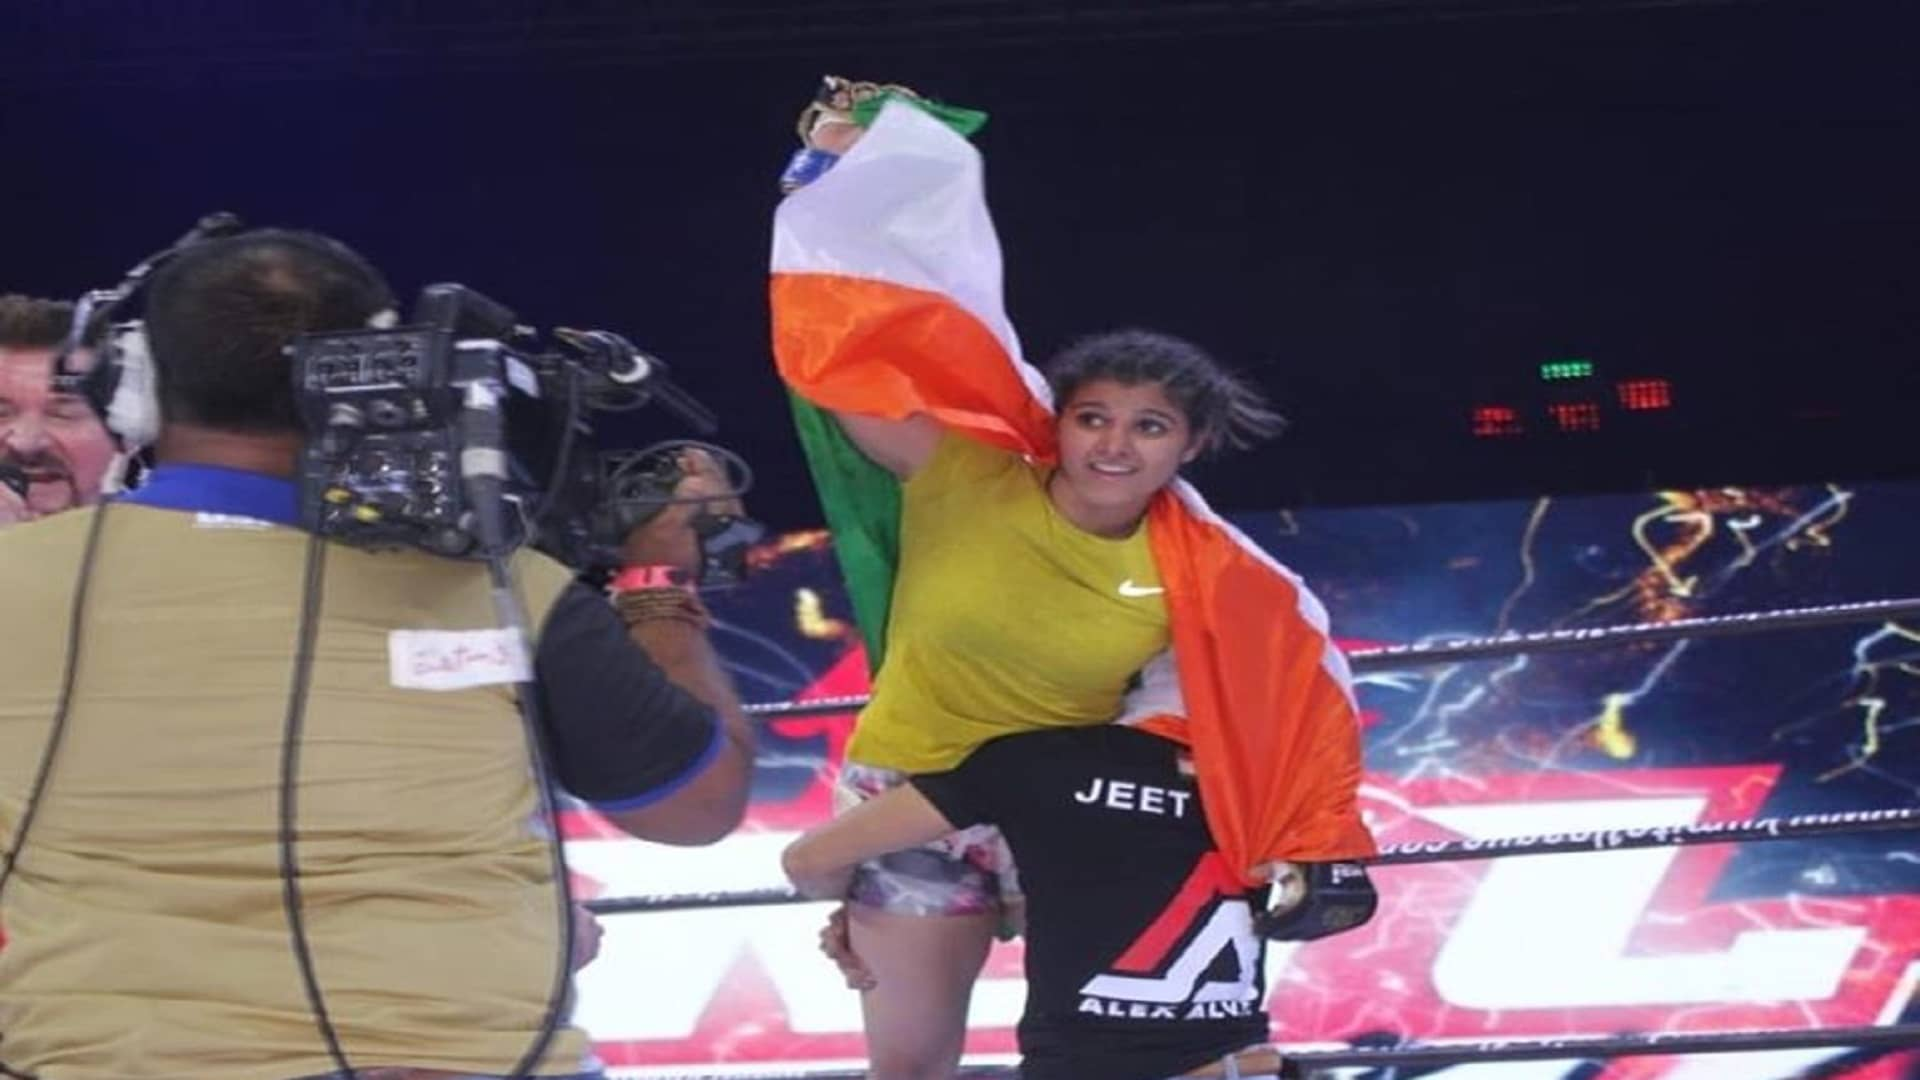 https://lockerroom.in/blog/view/Priyanka-Jeet-Toshi-Indian-MMA